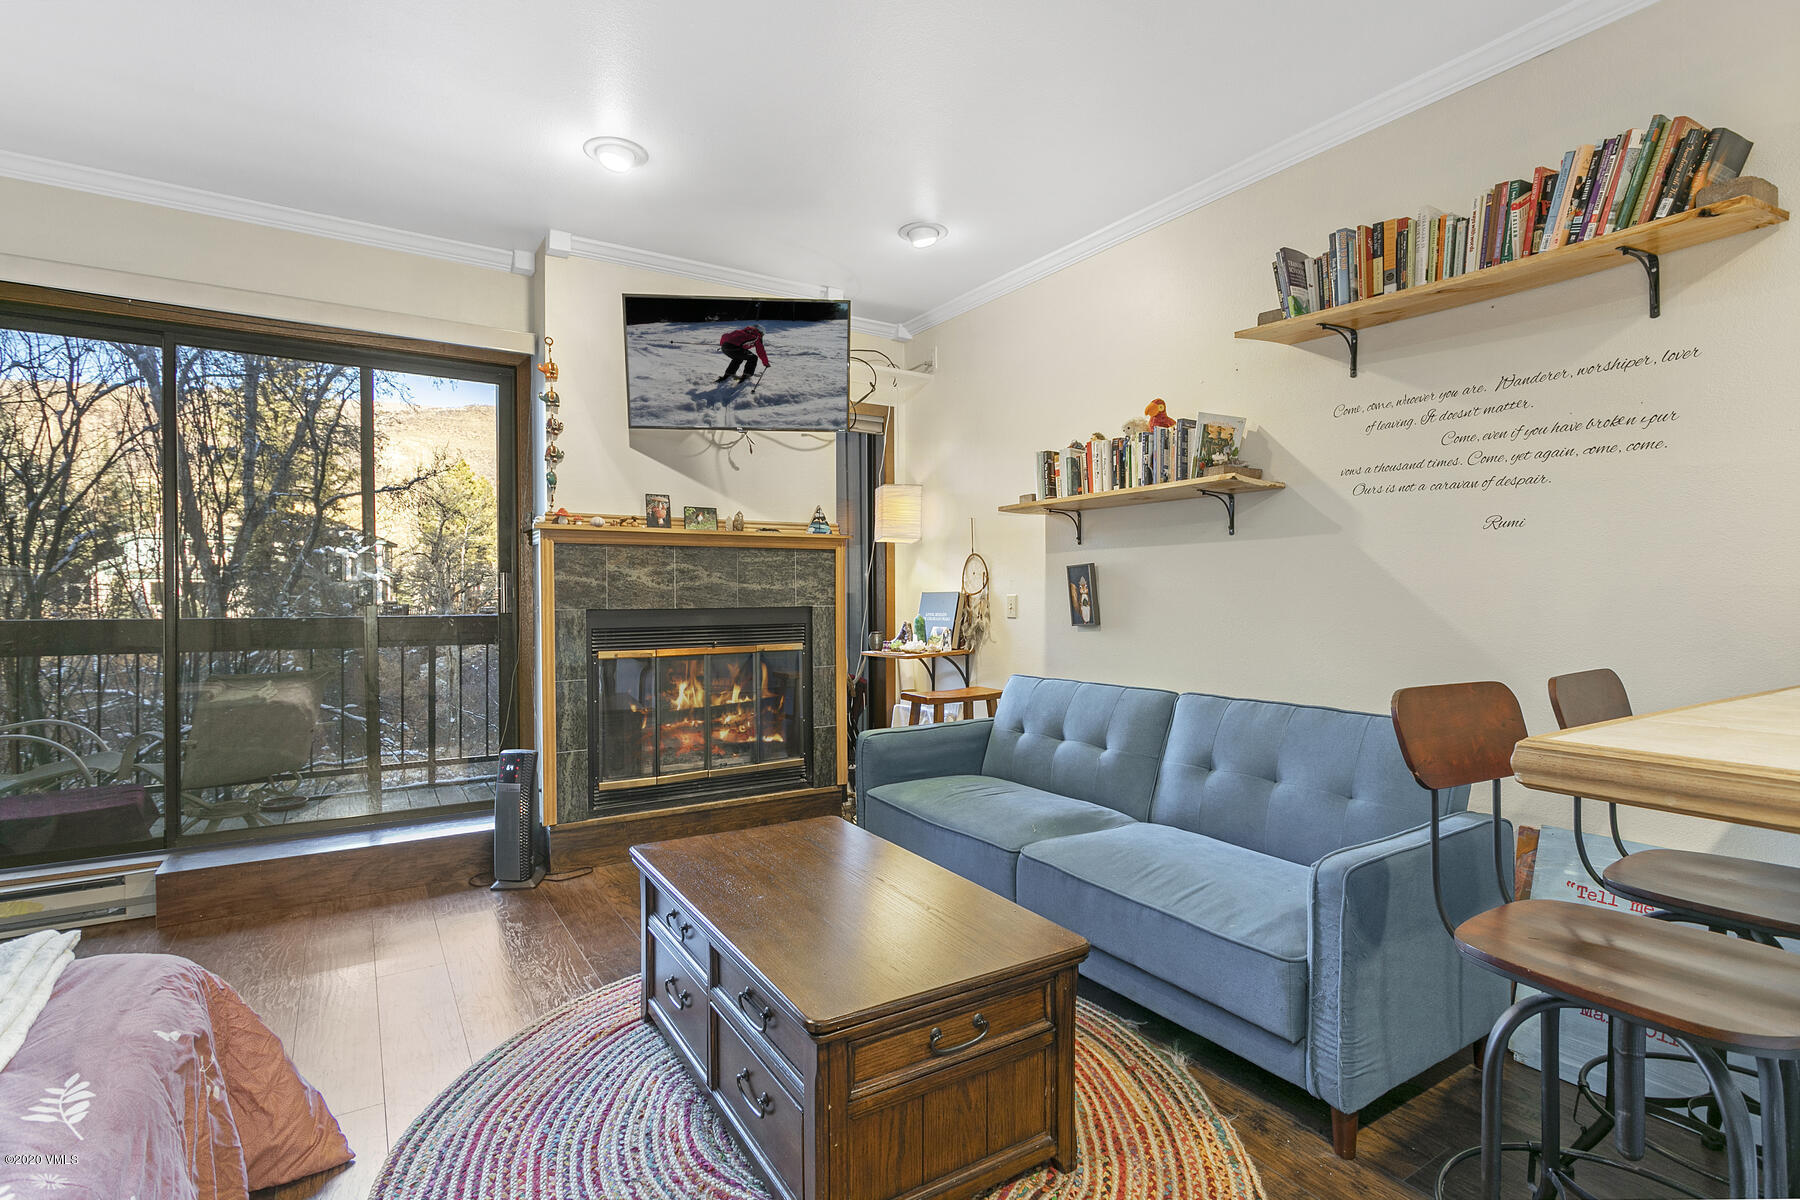 Furnished studio, with river views at a terrific value. Located on the bus route, and bike path, just minutes to Beaver Creek or Vail, including pool, hot-tub, and covered parking for two (one assigned and one guest pass). Wood floors, fireplace, balcony overlooking river, and a newer Murphy bed that stores with ease, opening up the space for lounging and entertaining. Short-term rent, or long-term occupy.  Shopping and dining options are all within close reach. Includes a full bath, and fair-sized kitchen with potential to expand and upgrade.  In-residence laundry, and an exterior gear closet make this a convenient condo to come home to, after a great day in the mountains. Eagle-Vail neighborhood amenities include tennis courts, pump track, playground, sledding hill, neighborhood pool, and parks.